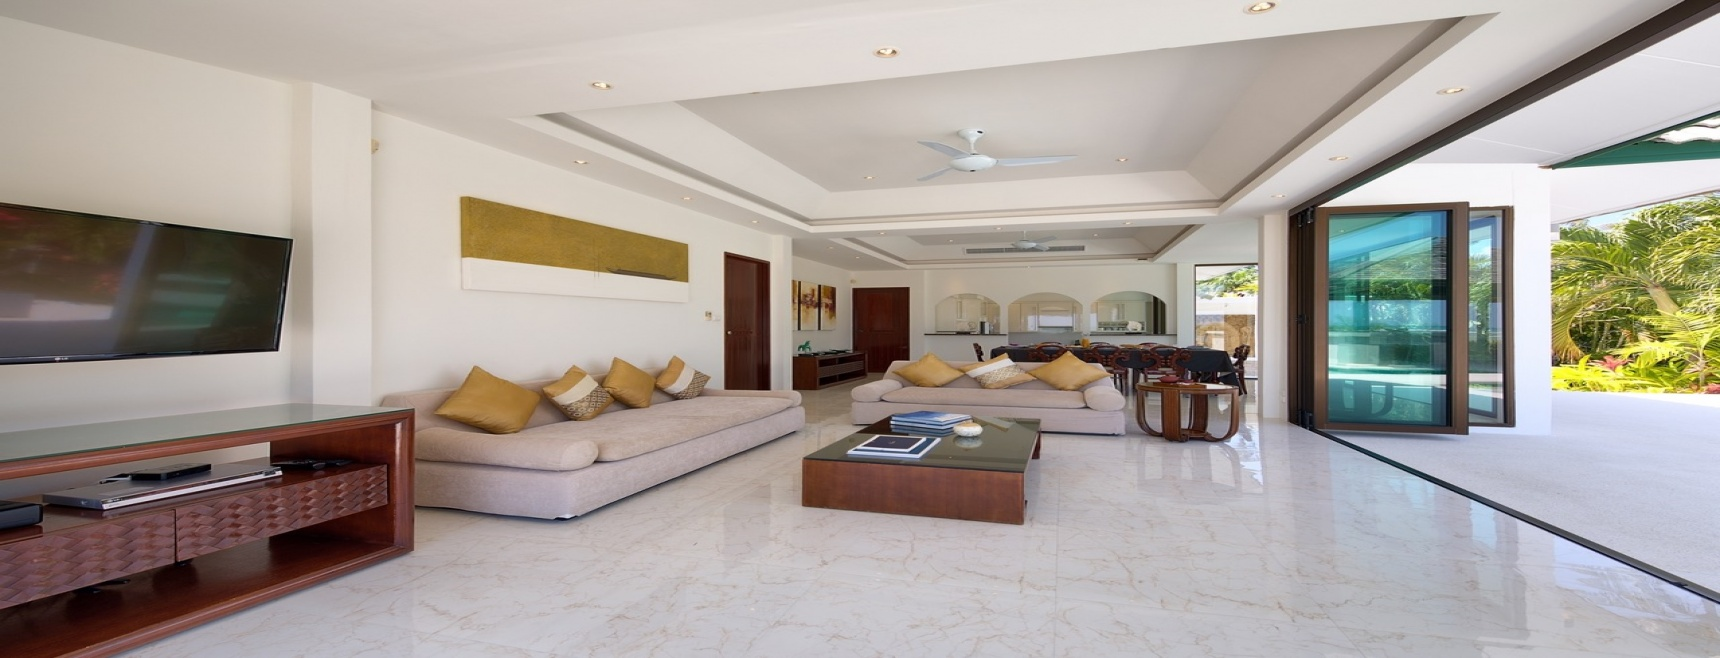 4 Bedrooms, Villa, Residential Sales, 4 Bathrooms, Listing ID 1382, Huatanon, South East, Koh Samui,